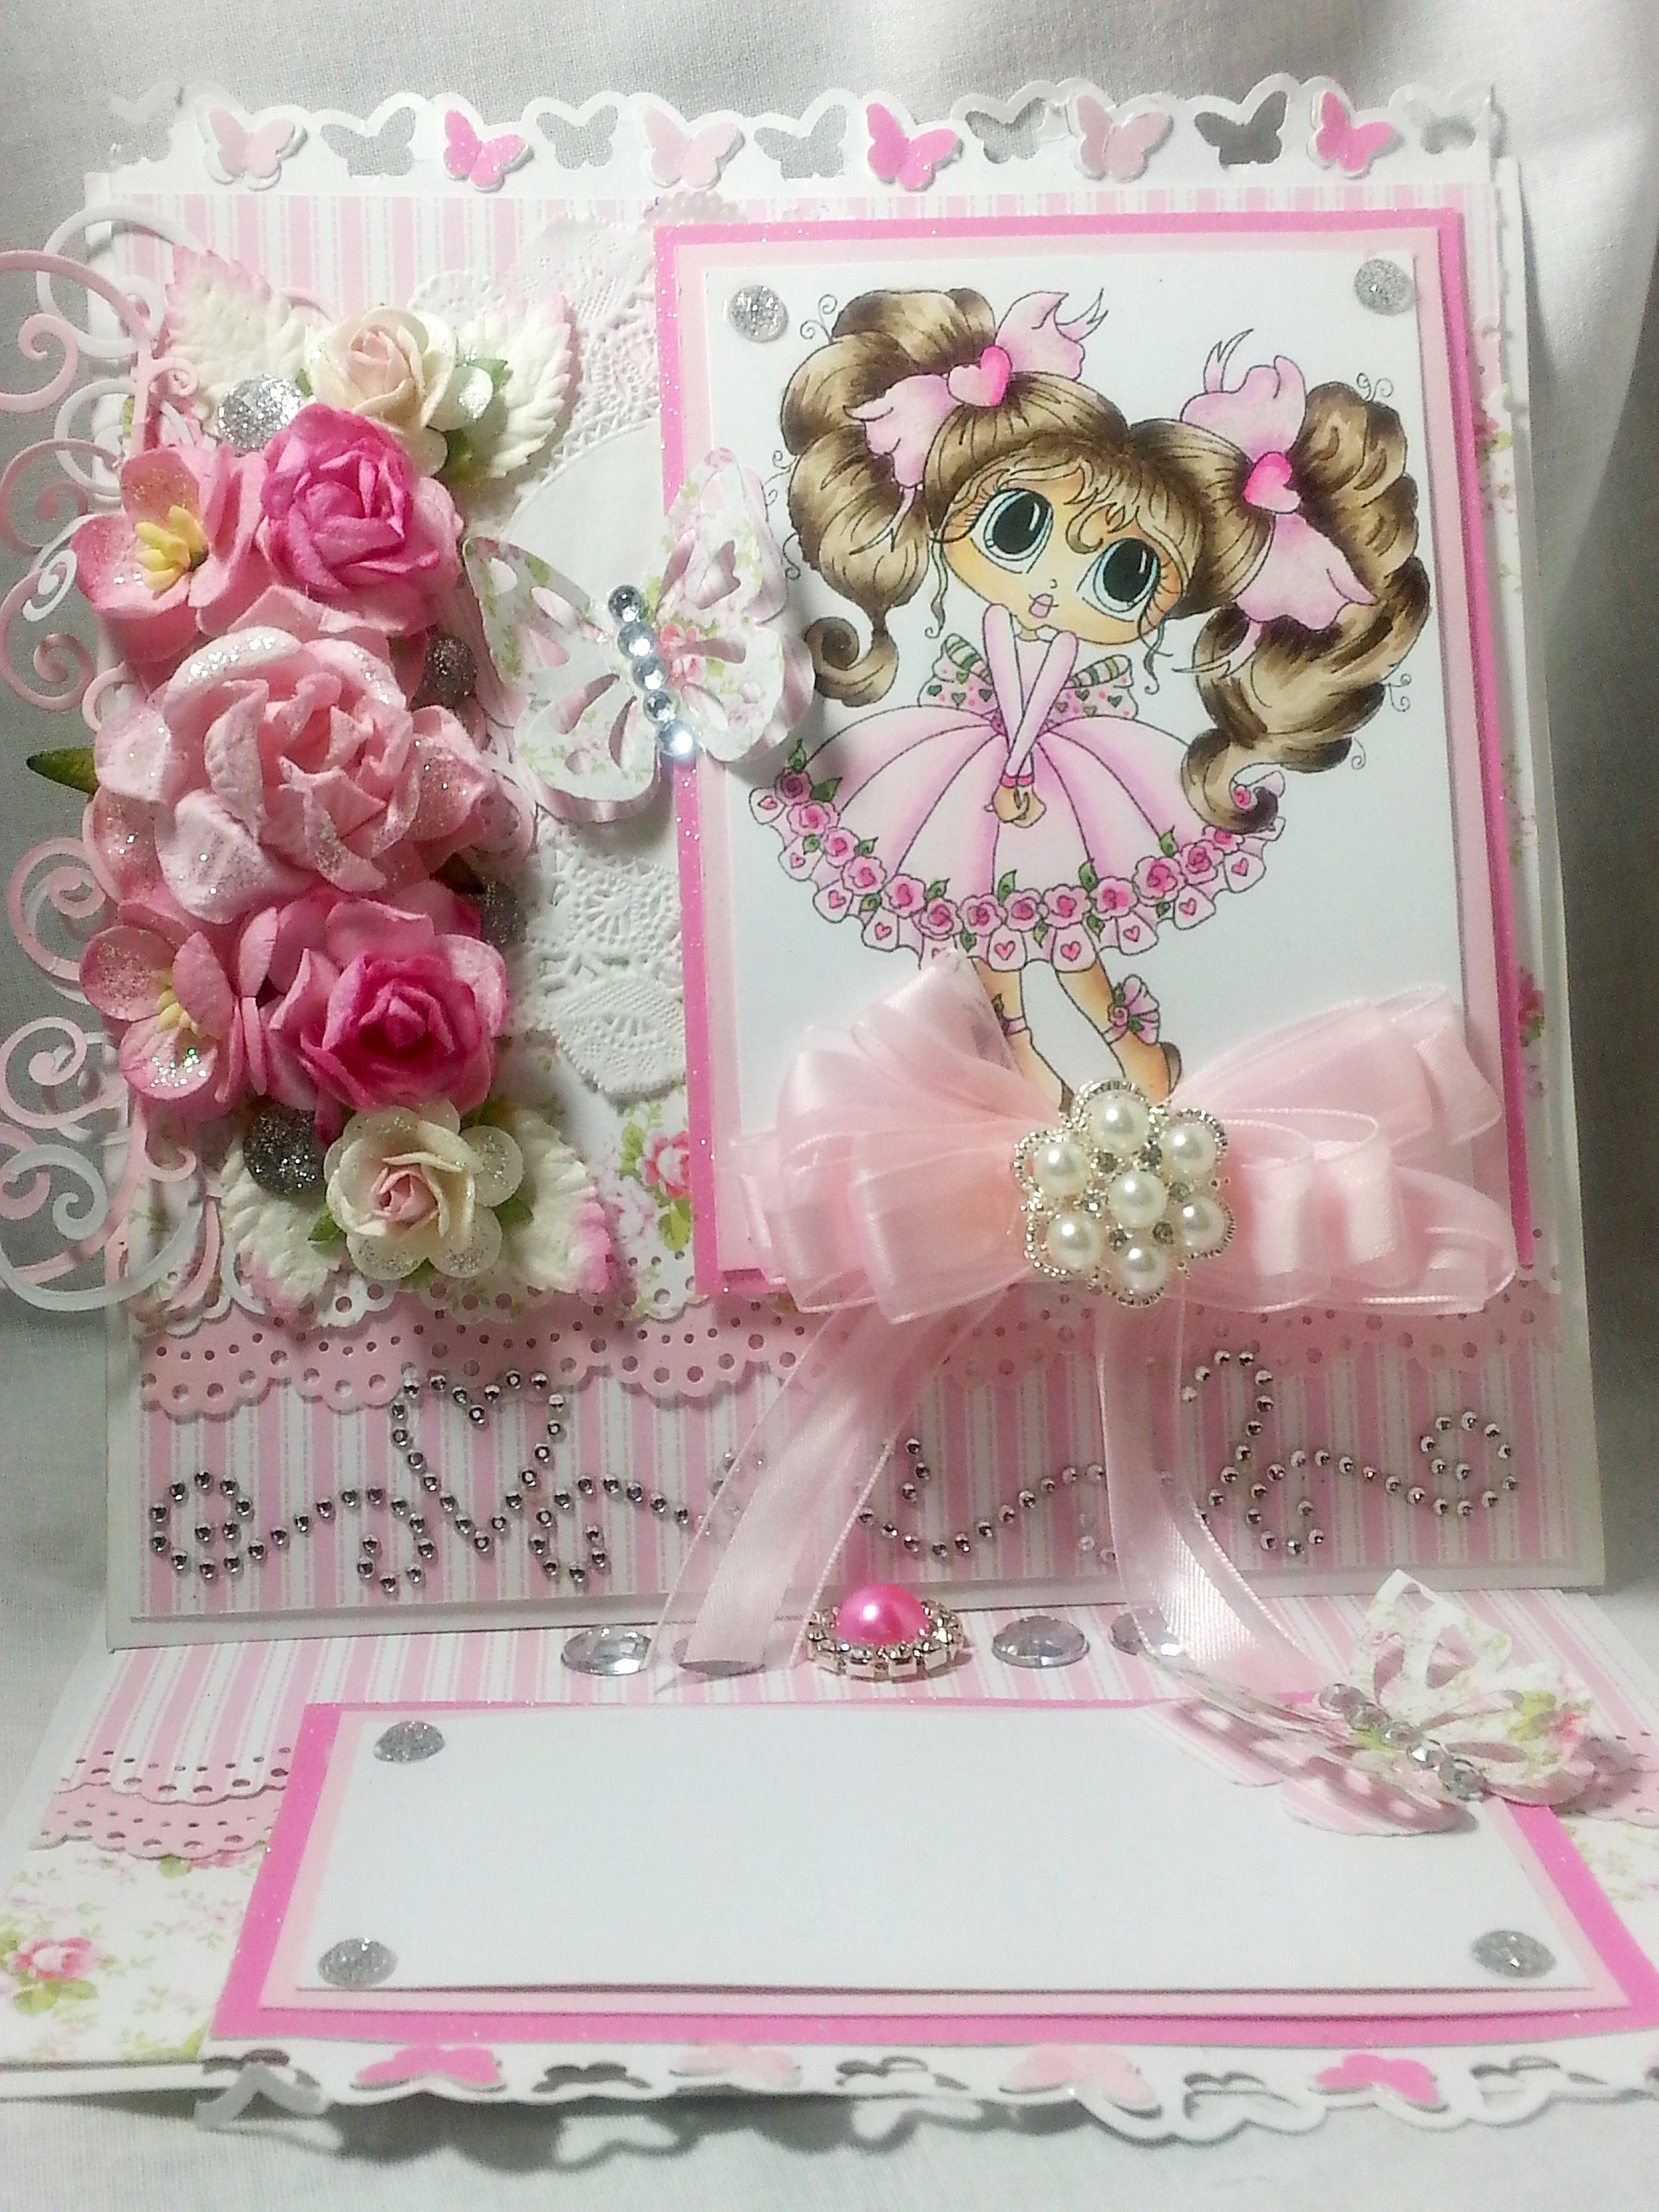 My besties by Sherri Baldy easel card made with First Edition Bella Rose papers